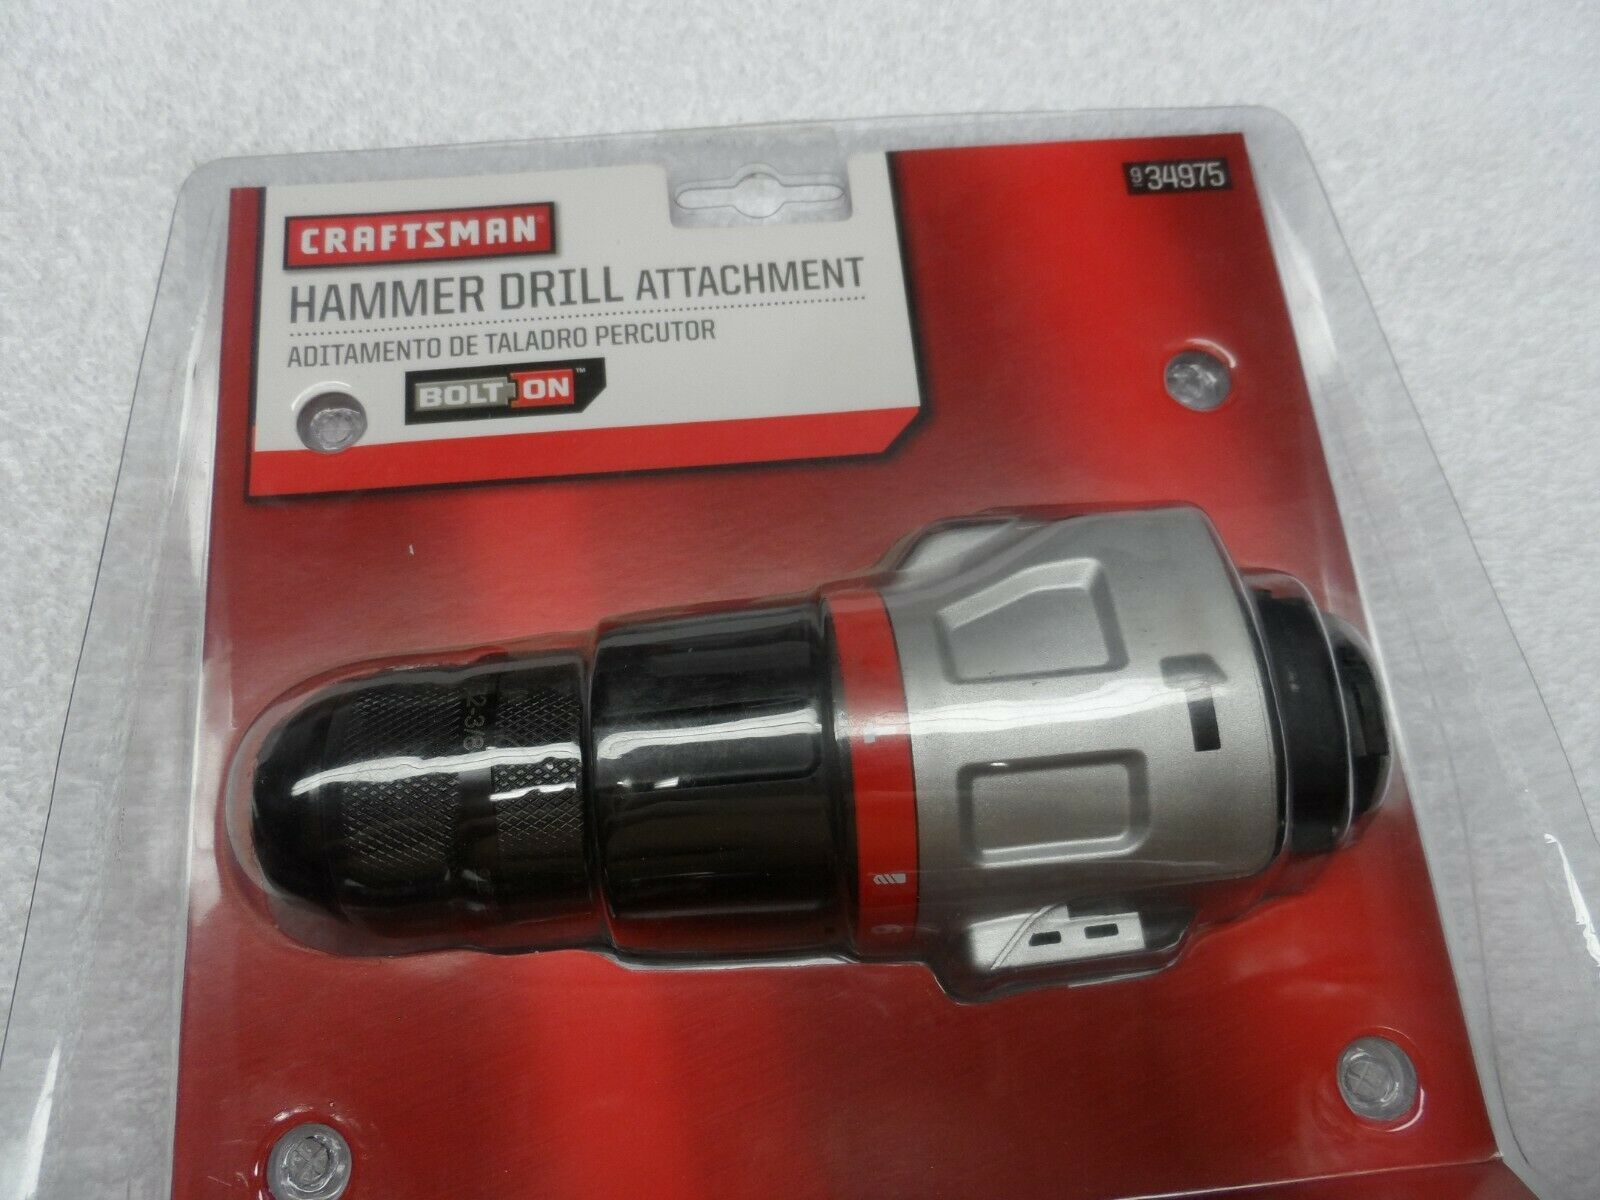 Craftsman Bolt-On Attachment 34975 or 934975 NEW